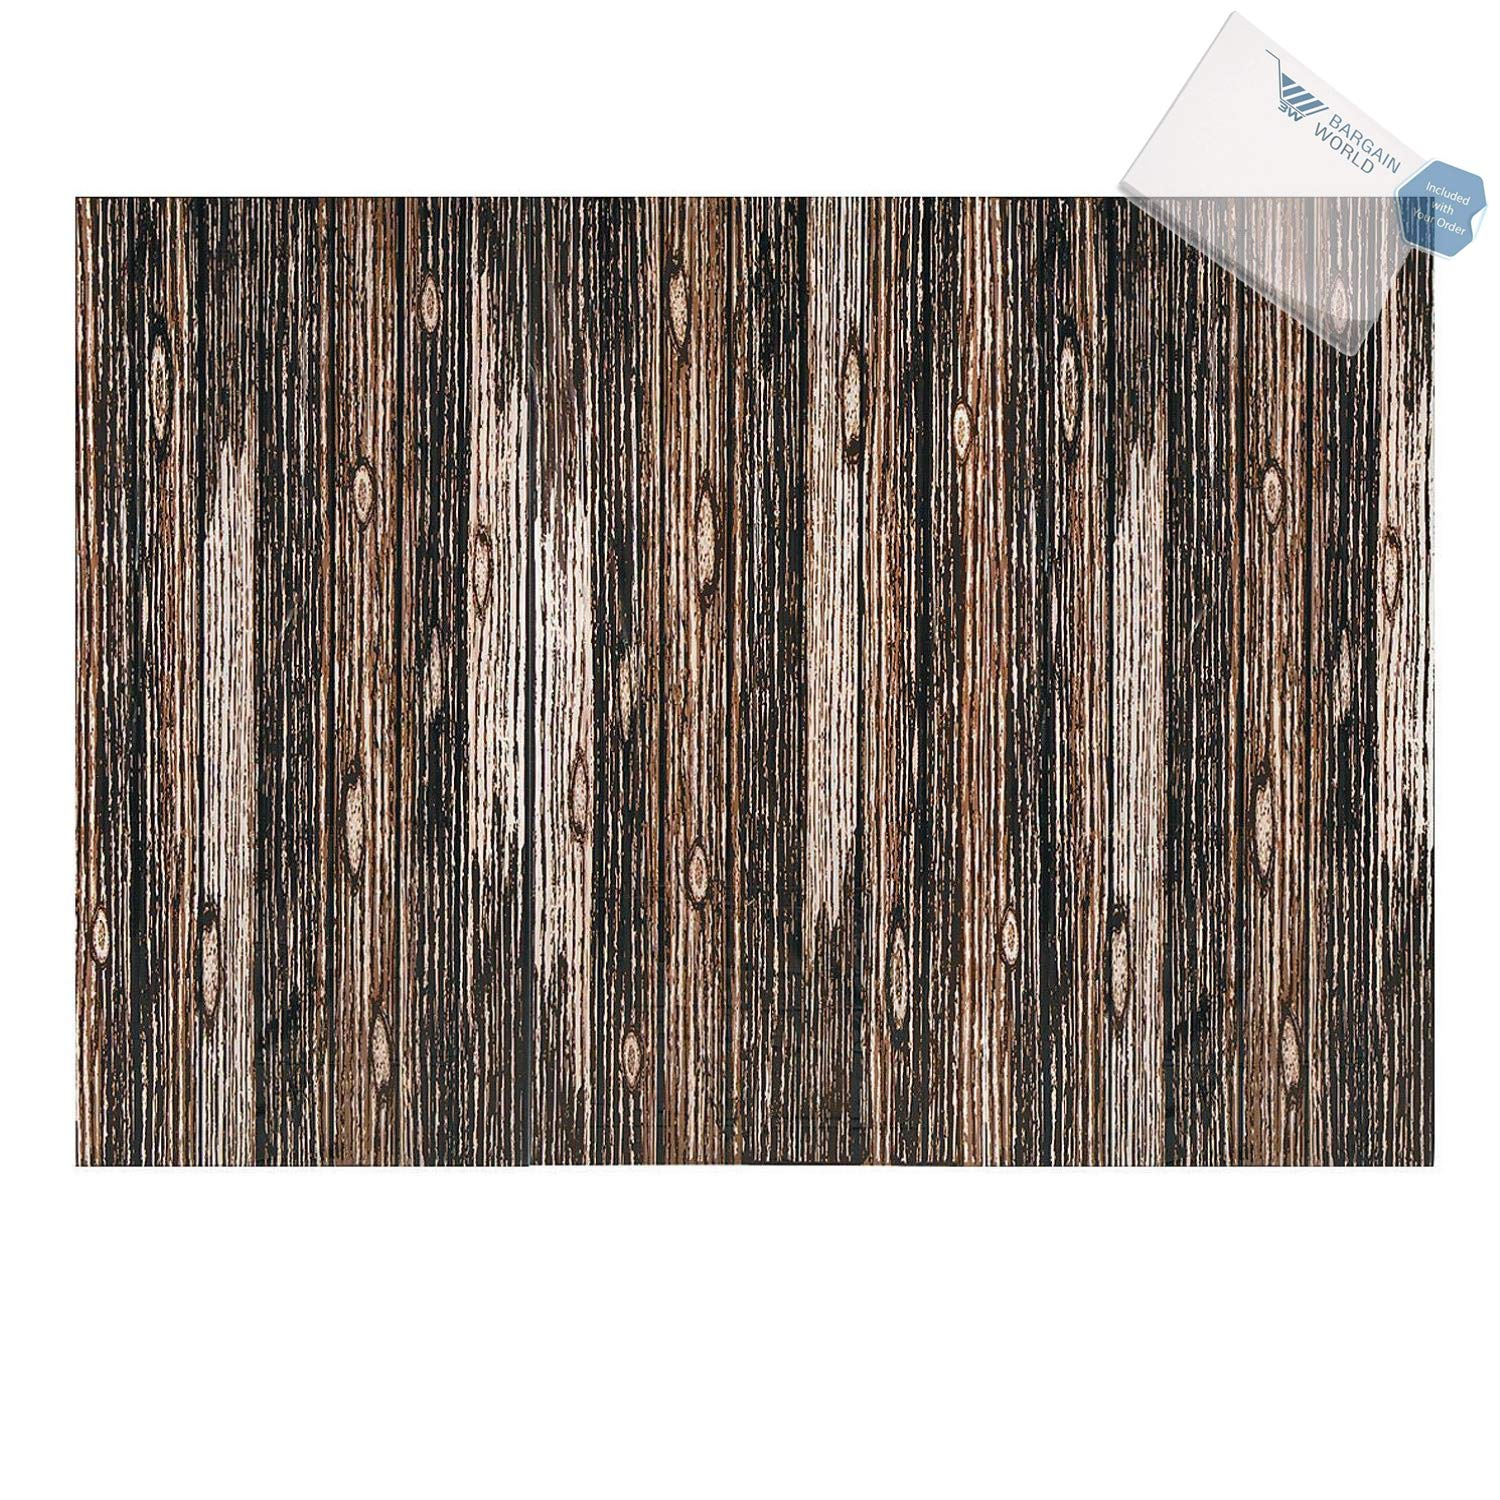 Bargain World WOOD PLANK BACKDROP BANNER (3PC) (With Sticky Notes)